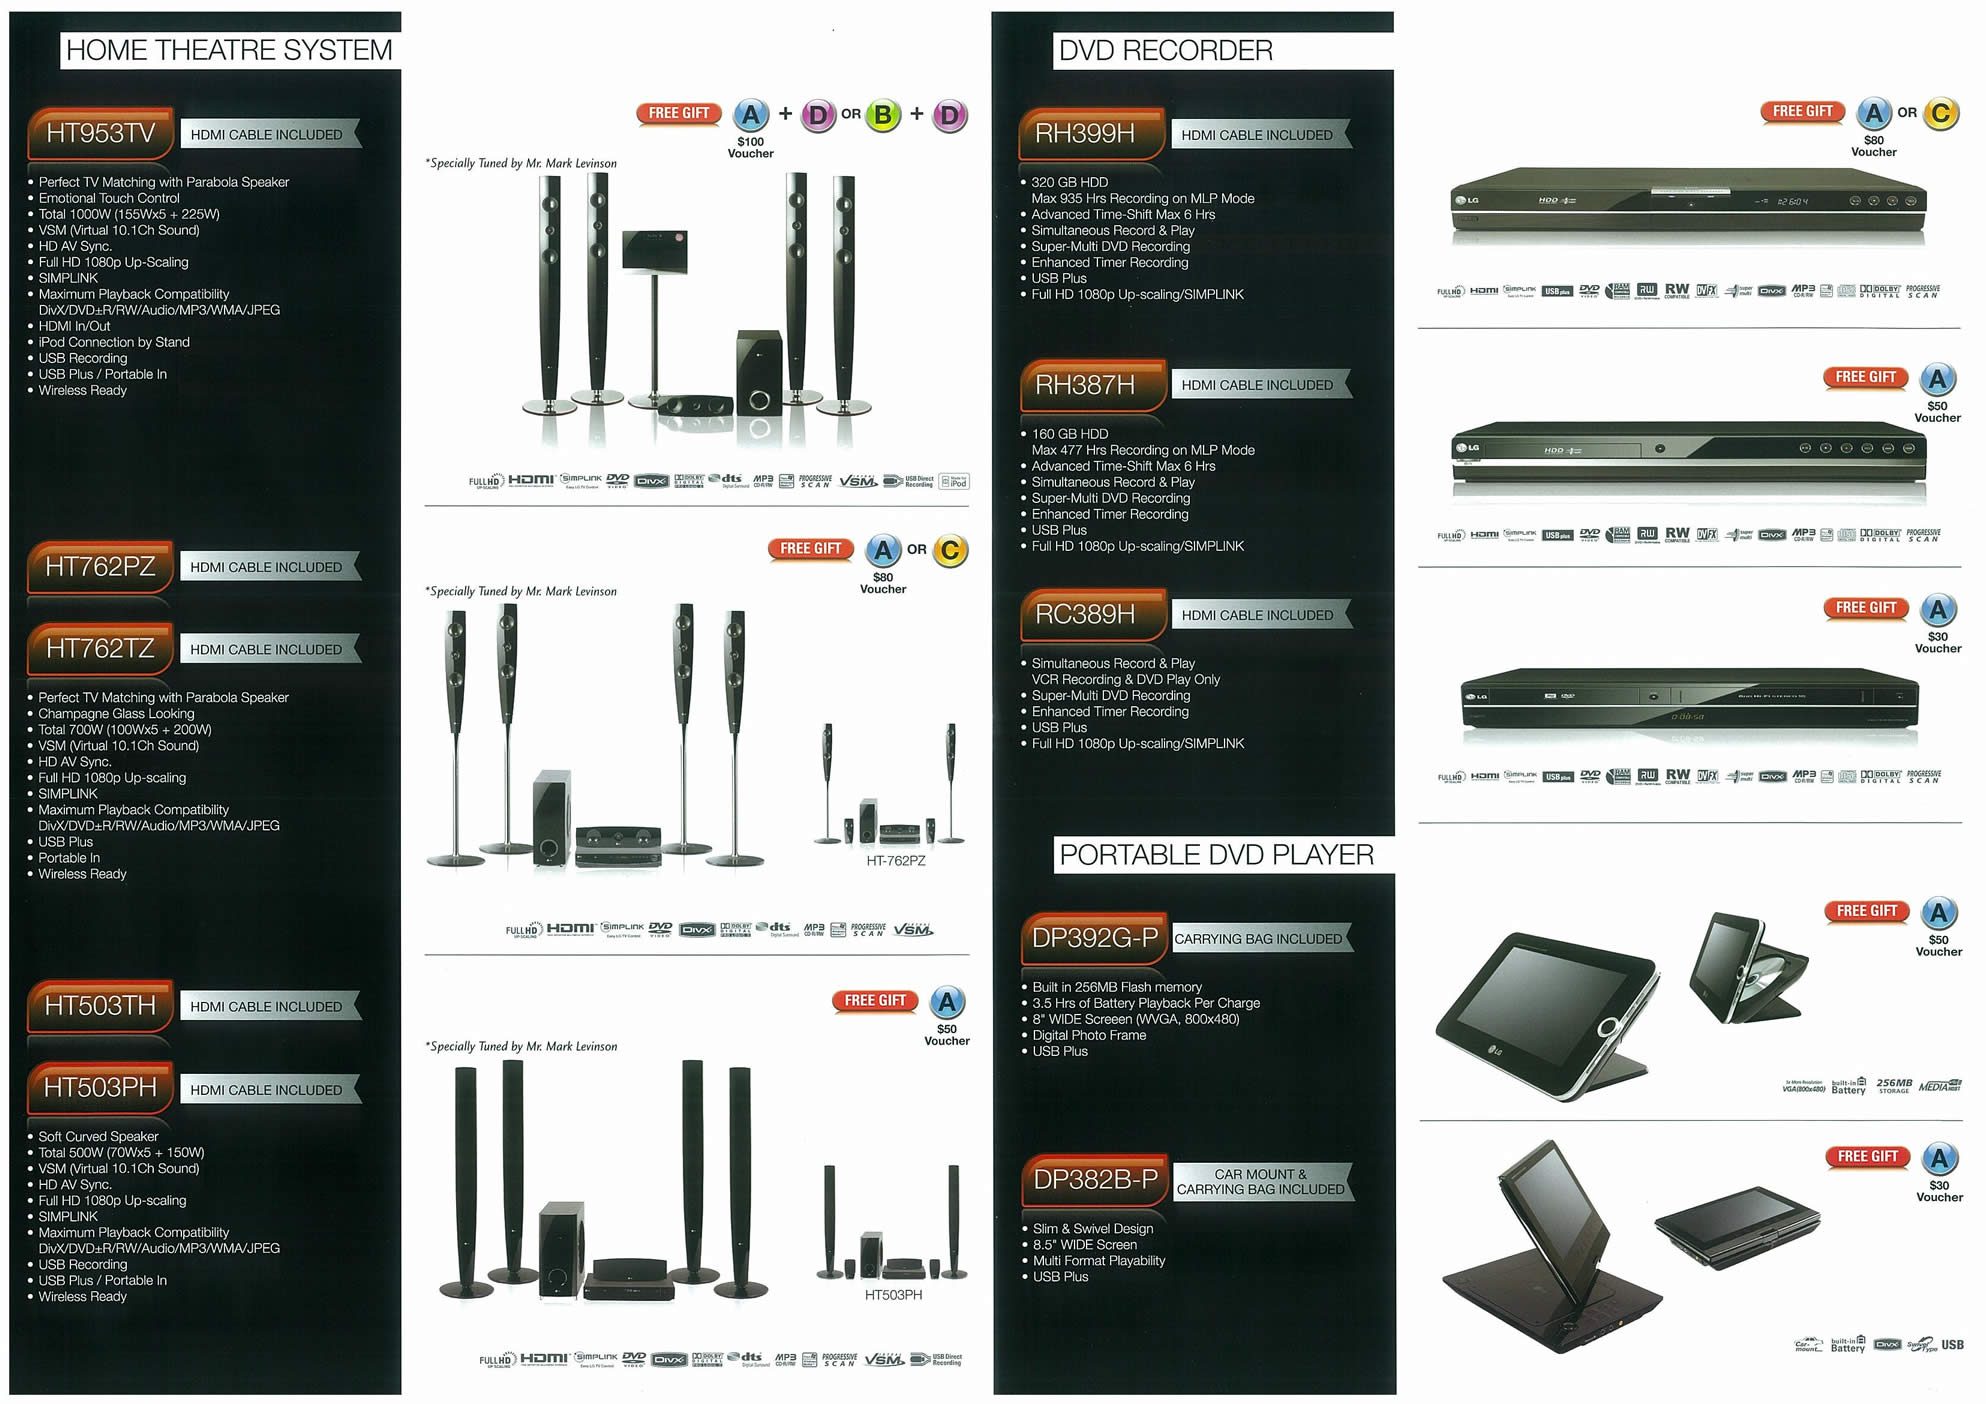 Comex 2008 price list image brochure of LG Home Theatre Systems Page 2